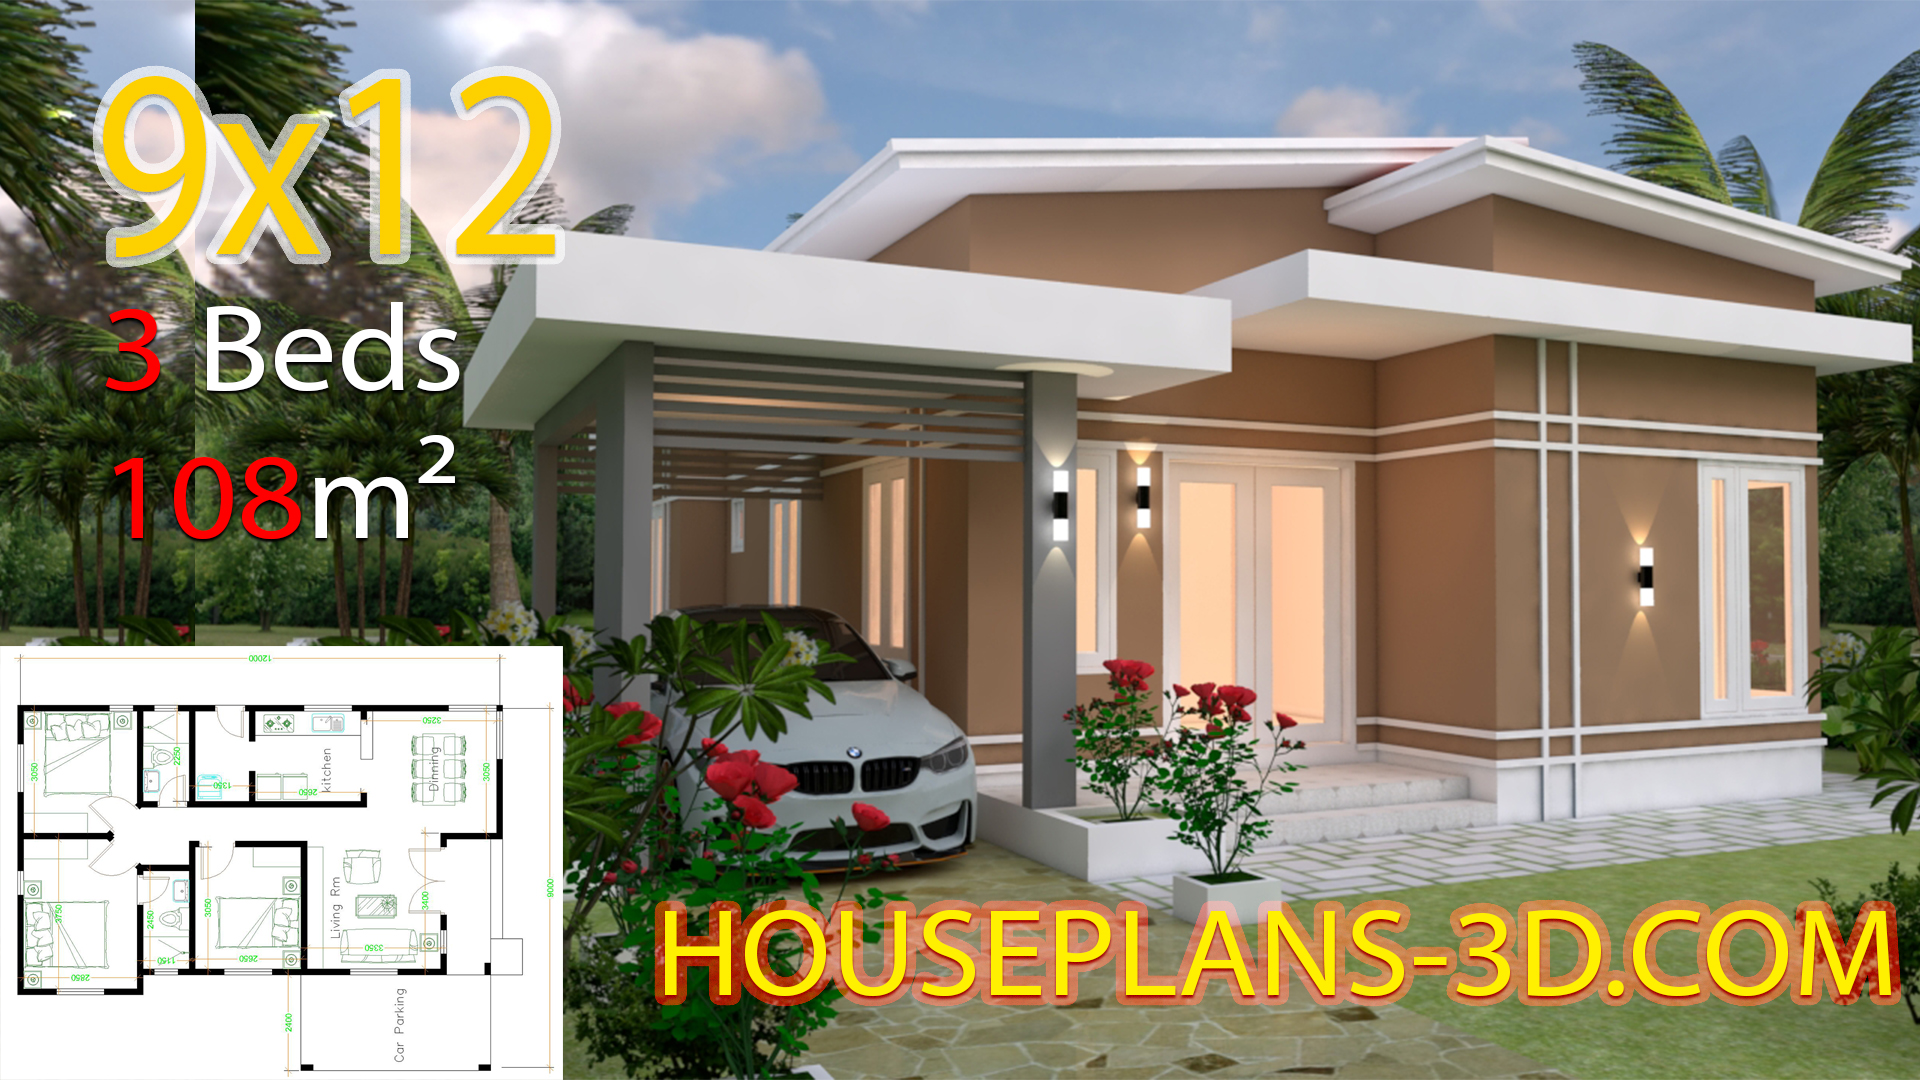 House design 9x12 with 3 bedrooms slop roof - House Plans 3D